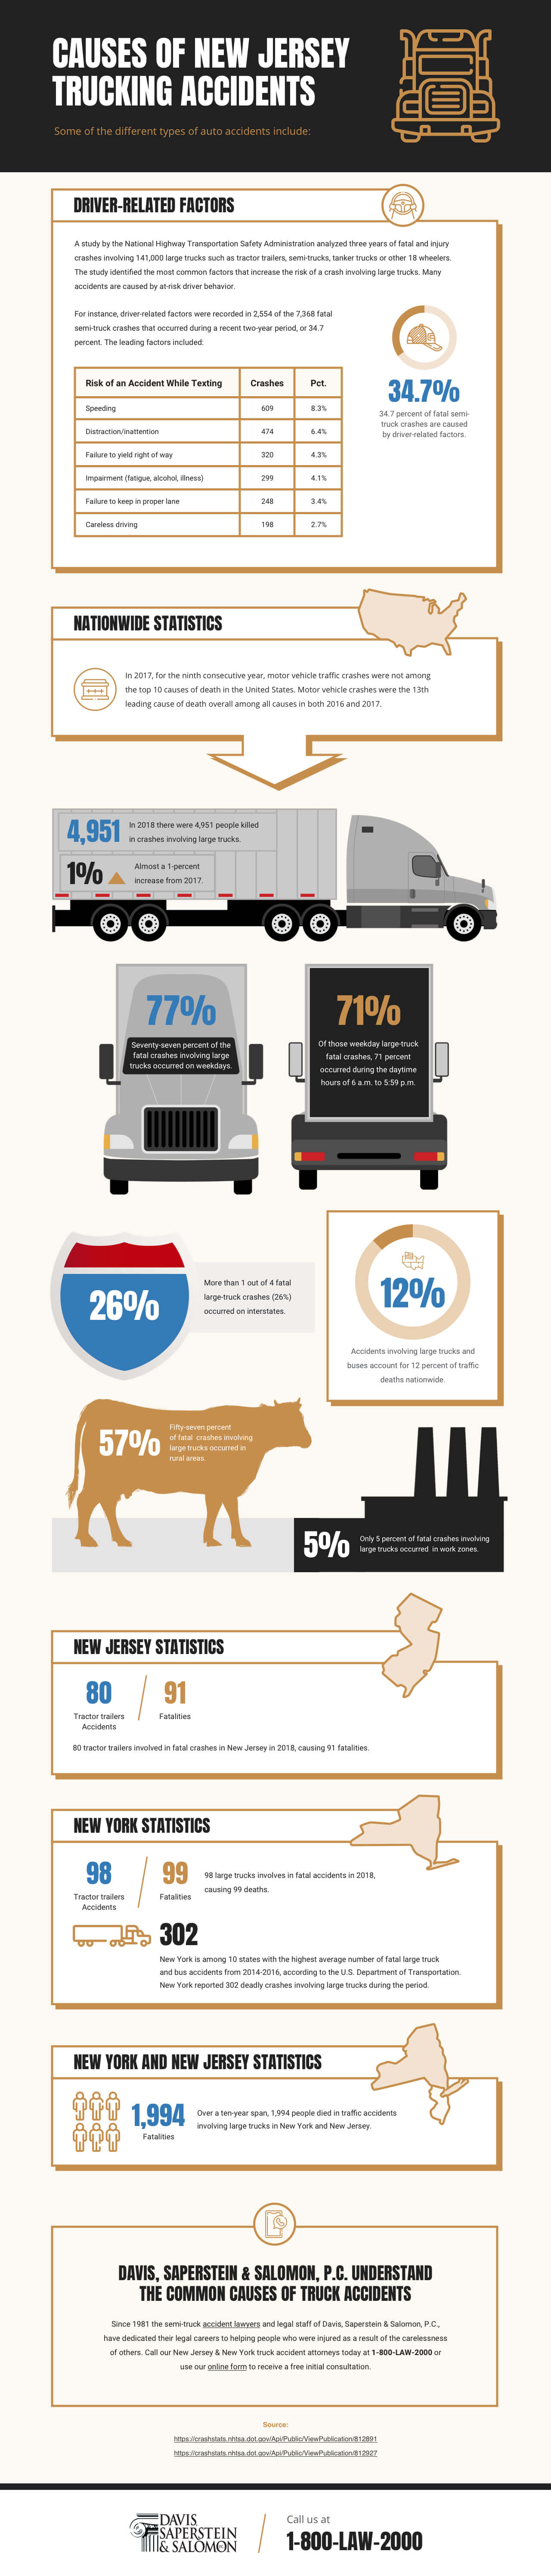 Graphics - Causes of New Jersey Trucking Accidents